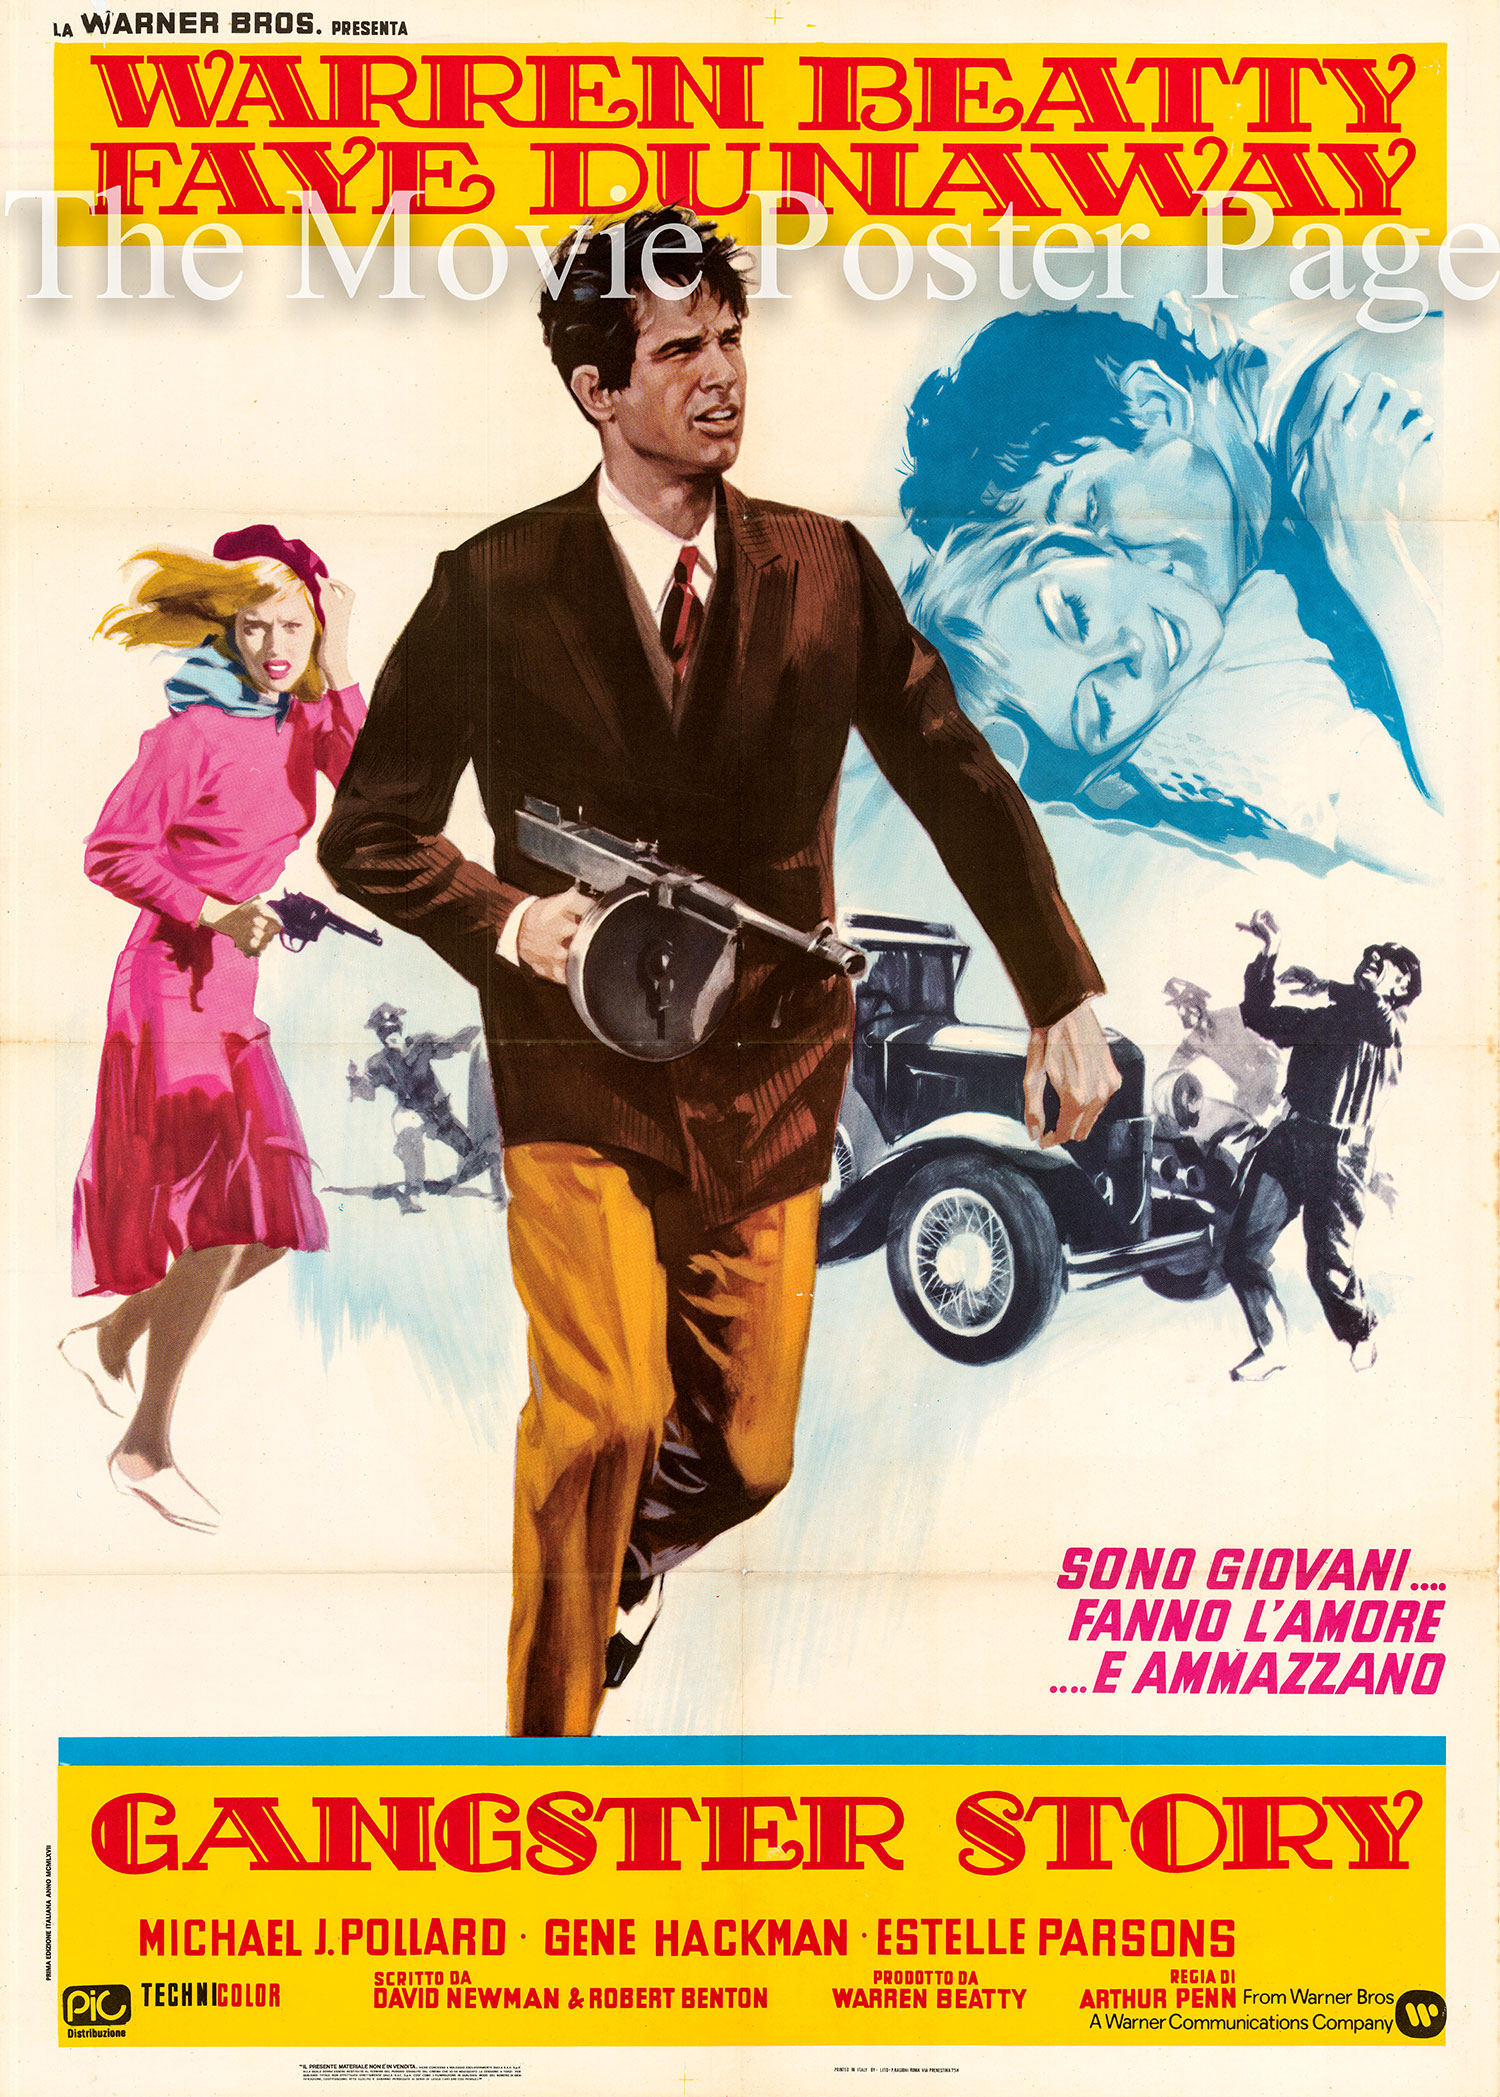 Pictured is an Italian two-sheet poster for the 1967 Arthur Penn film Bonnie and Clyde starring Warren Beatty and Faye Dunaway.